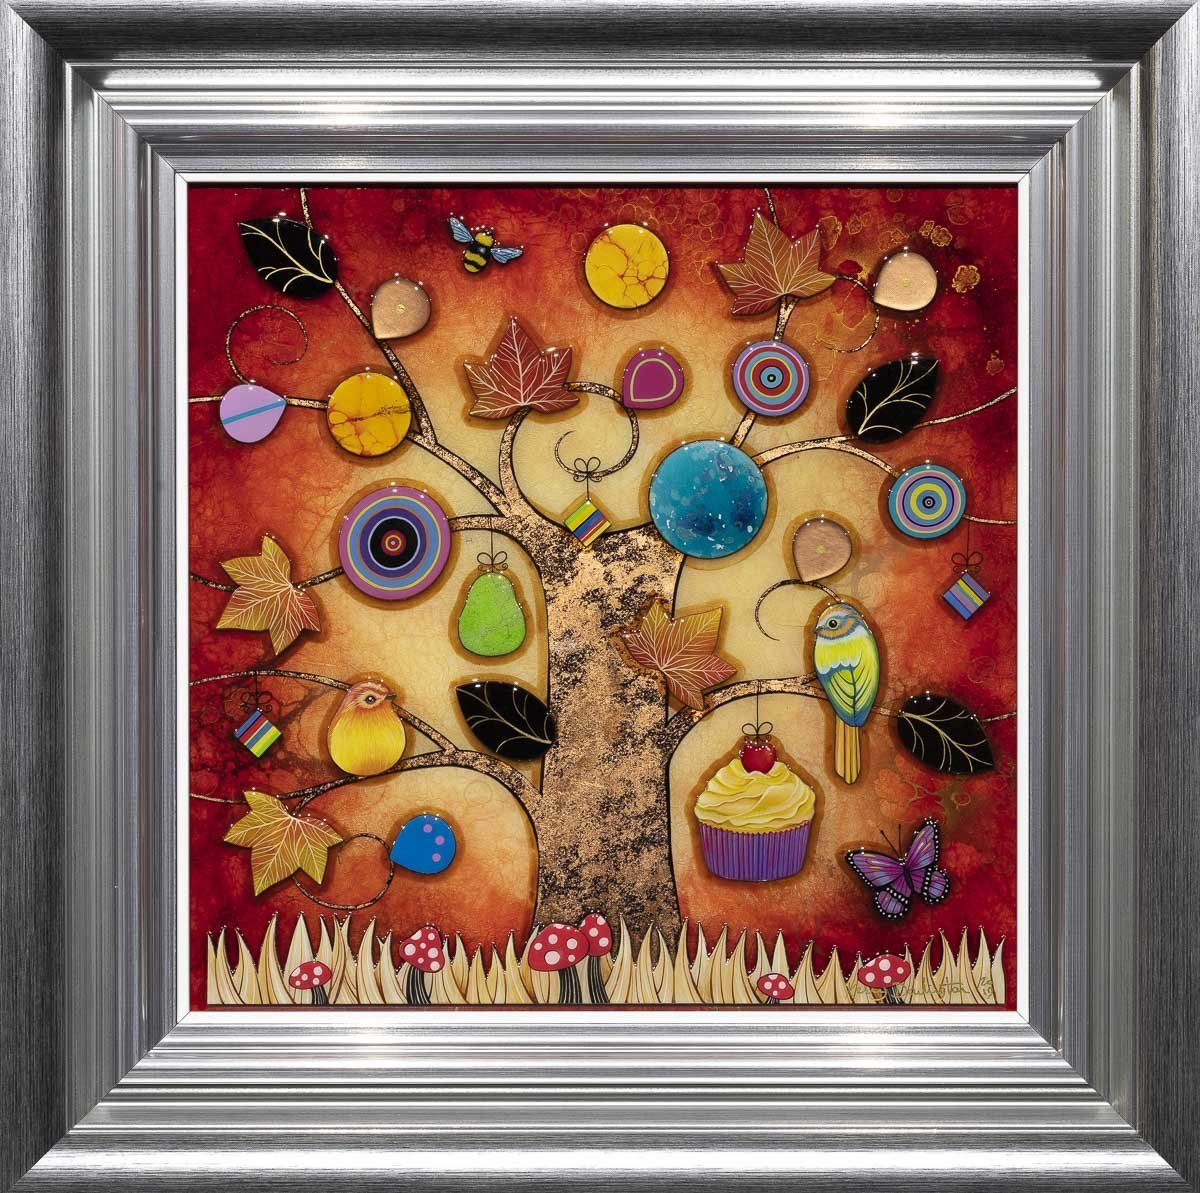 Autumn Harvest - Original Kerry Darlington Framed